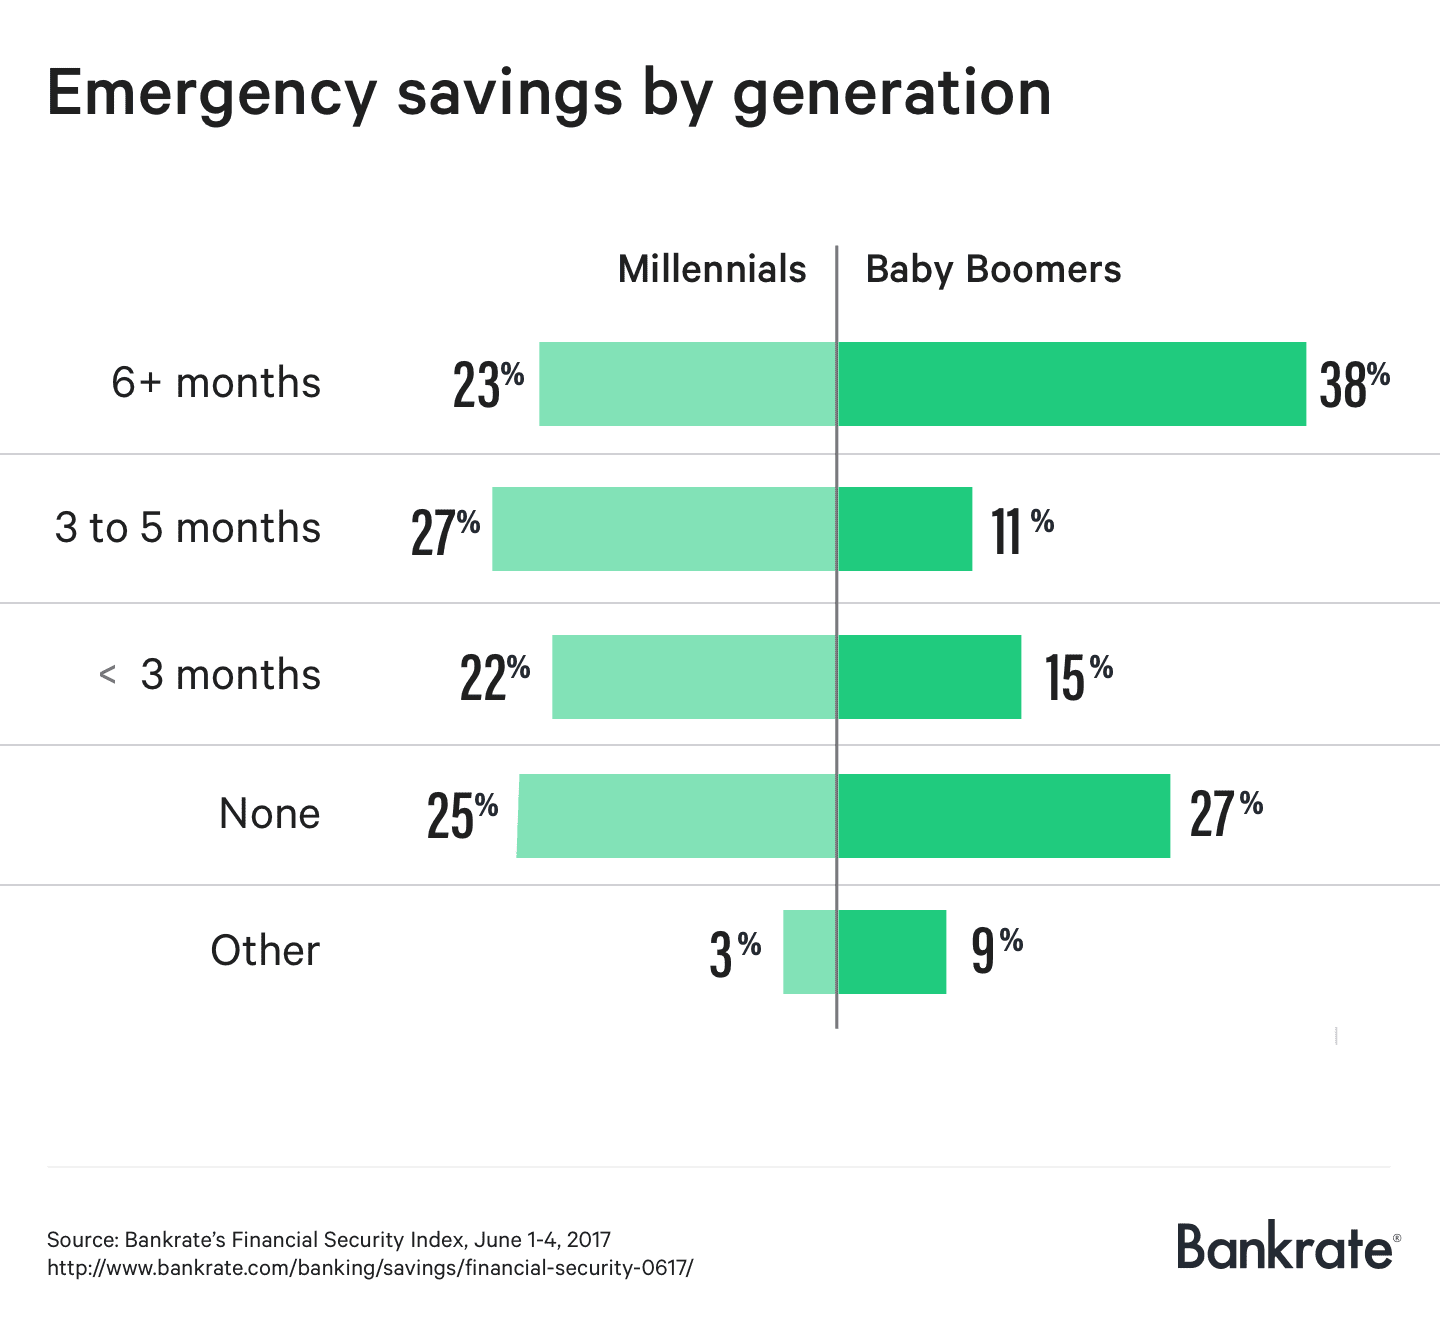 HANDOUT ONE TIME USE: Emergency savings by generation June 2017